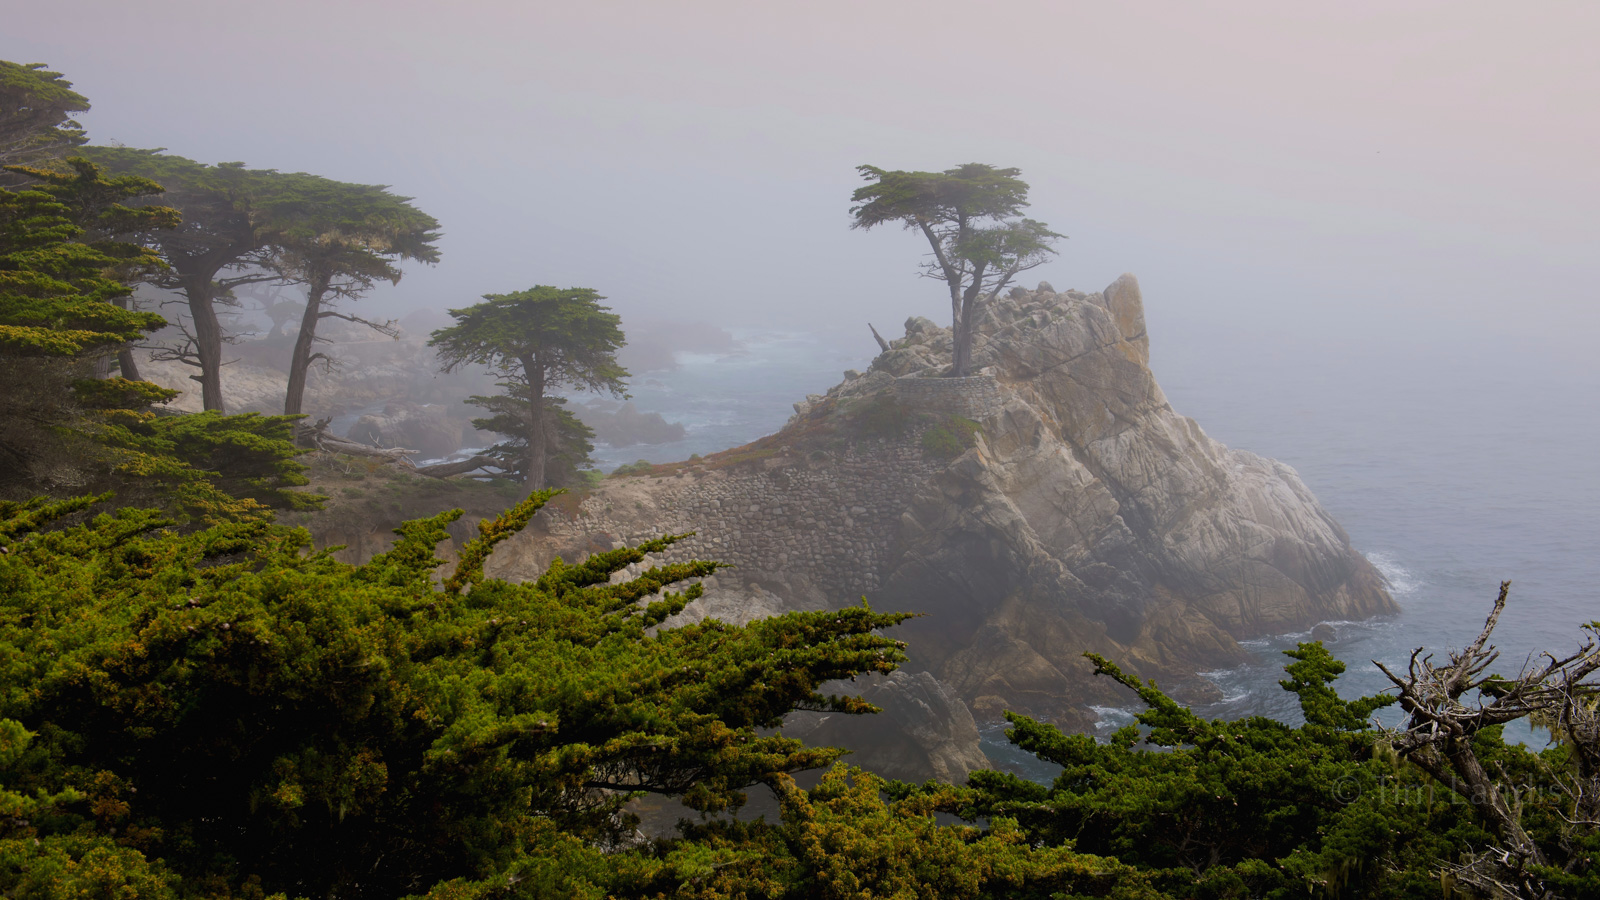 17 mile drive, California, Carmel, Carmel by the sea, Monterey, Pebble Beach, cyprus point, the point, photo